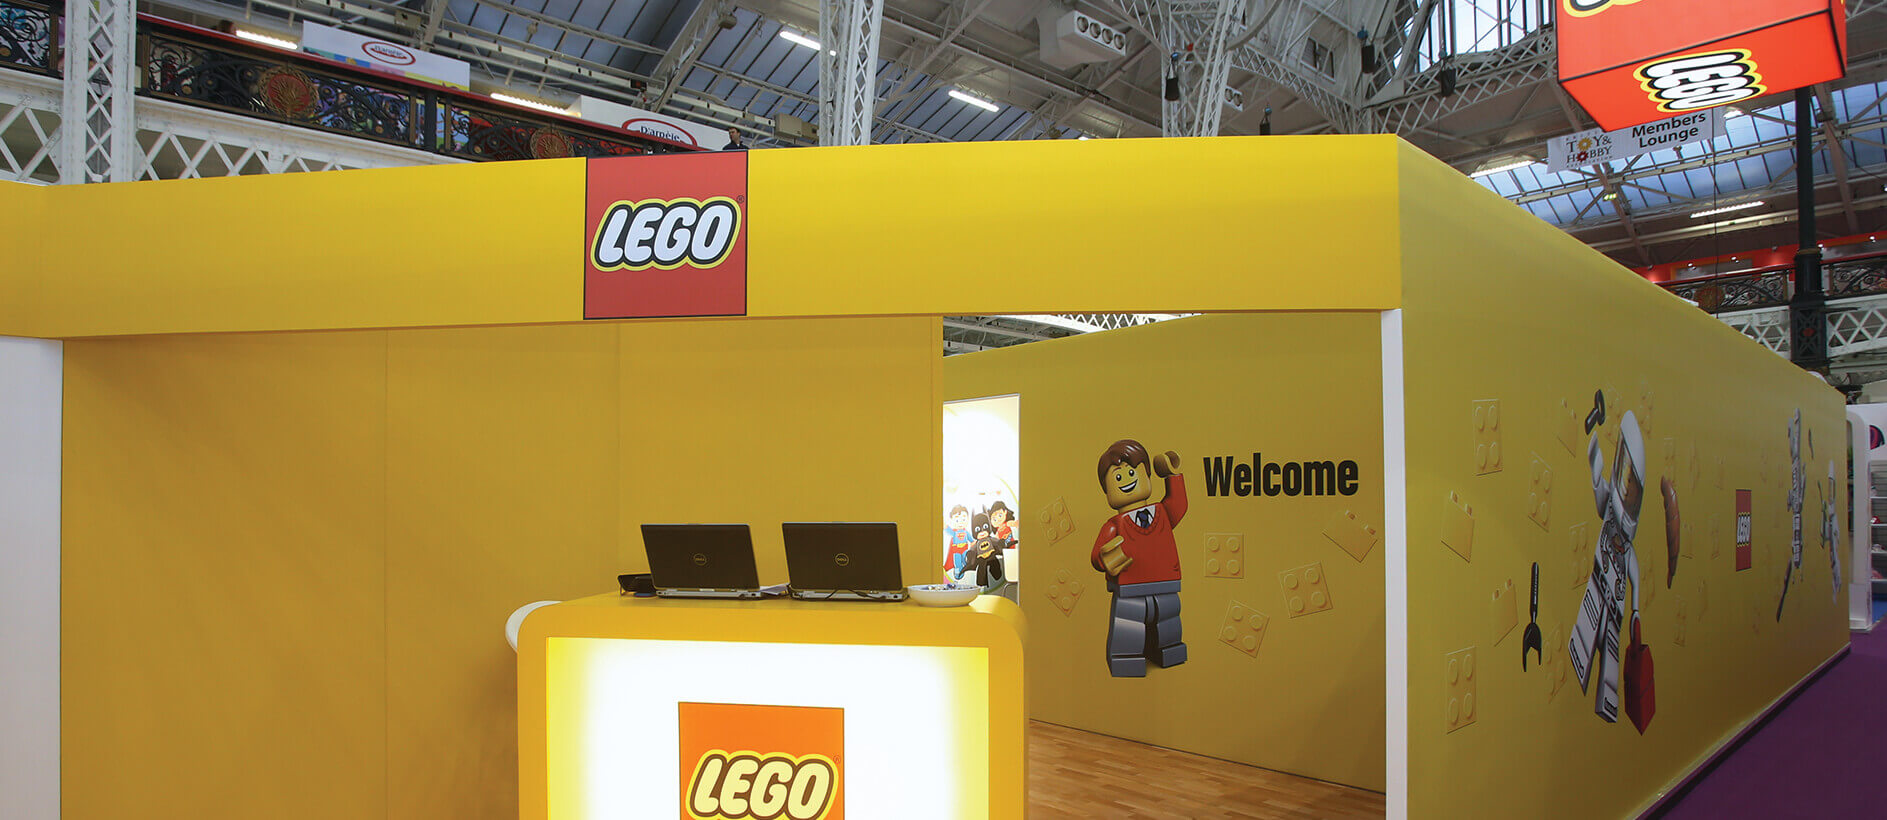 Welcome sign on Lego exhibition stand